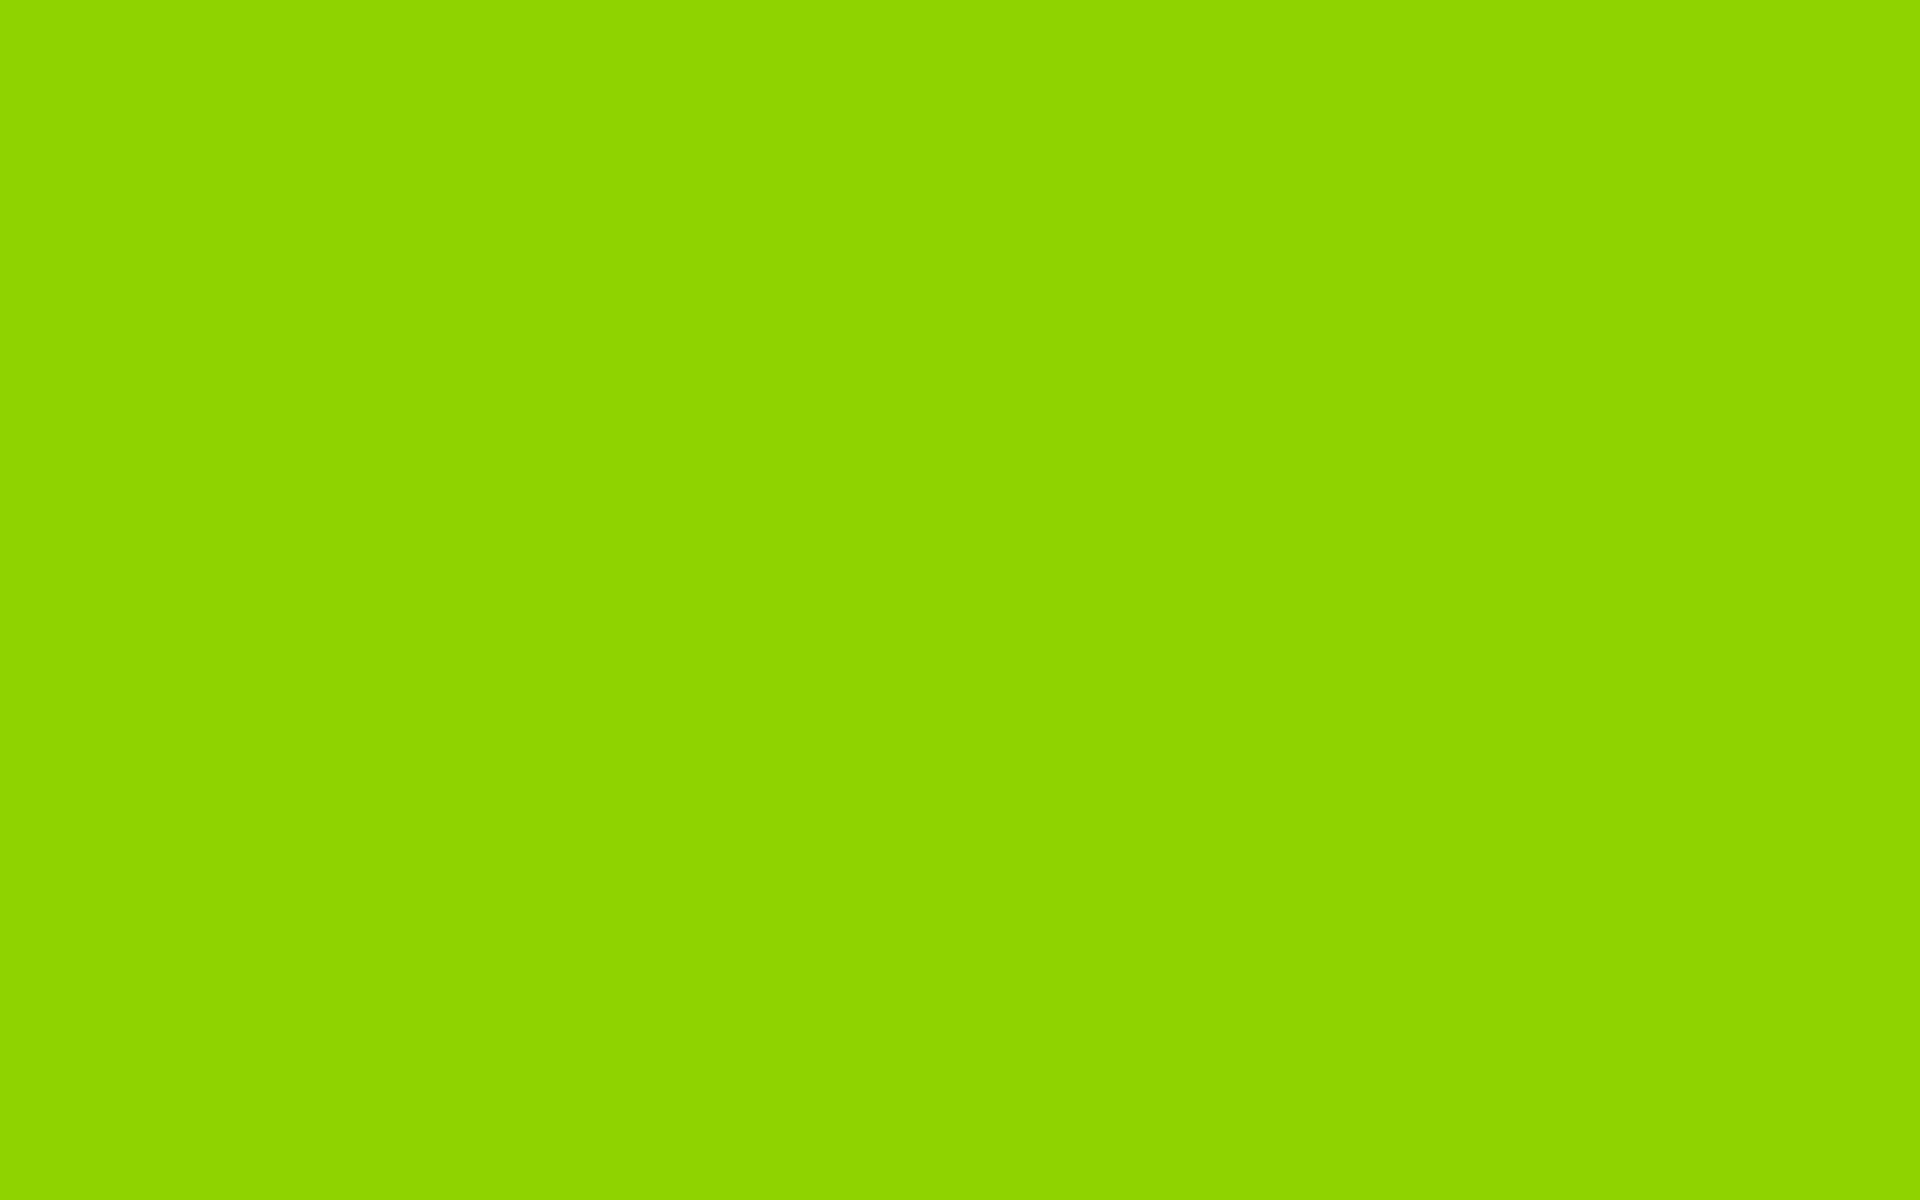 1920x1200 Sheen Green Solid Color Background